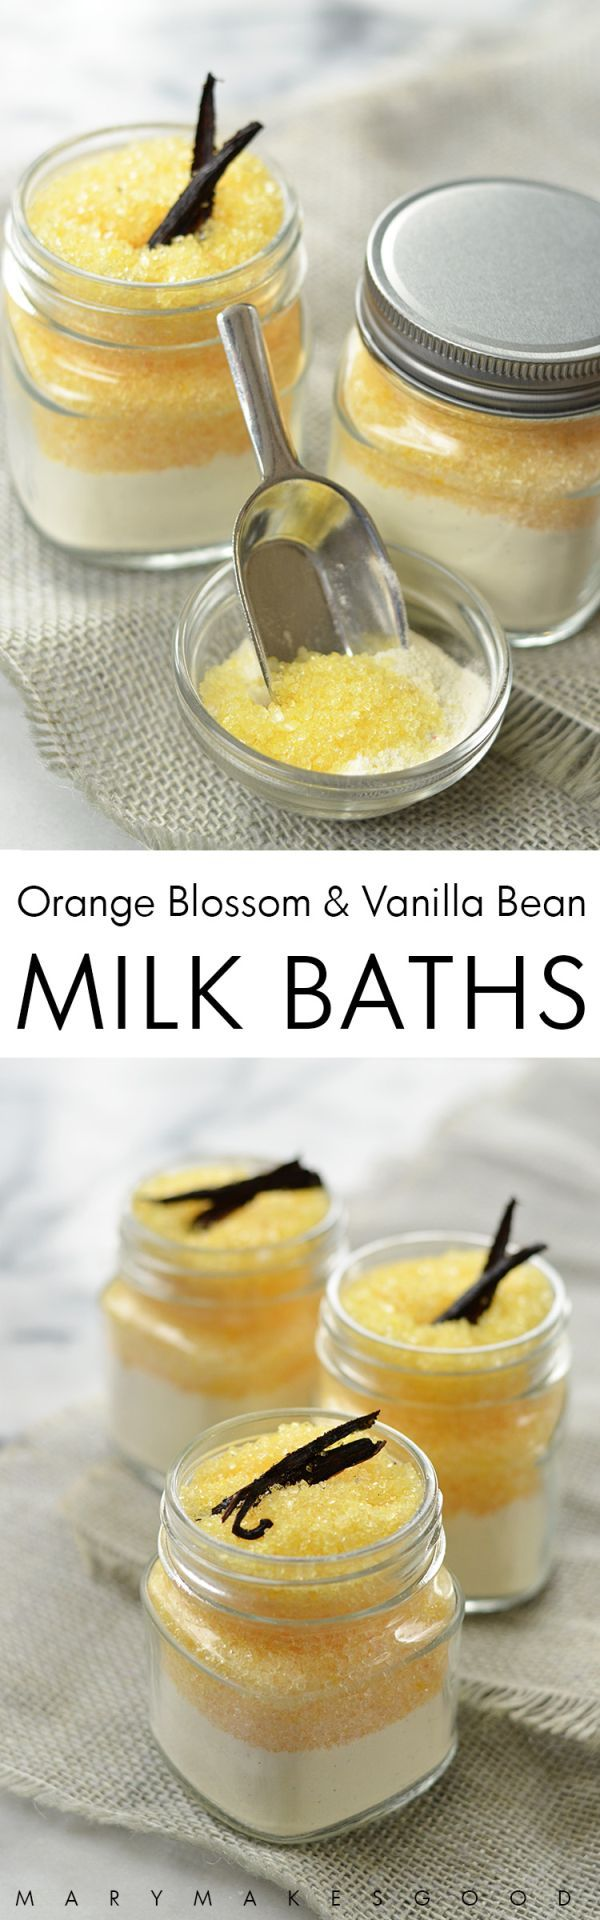 You can make these Orange Blossom & Vanilla Bean Milk Baths with just five all-natural ingredients. Great for gifts or self-care!